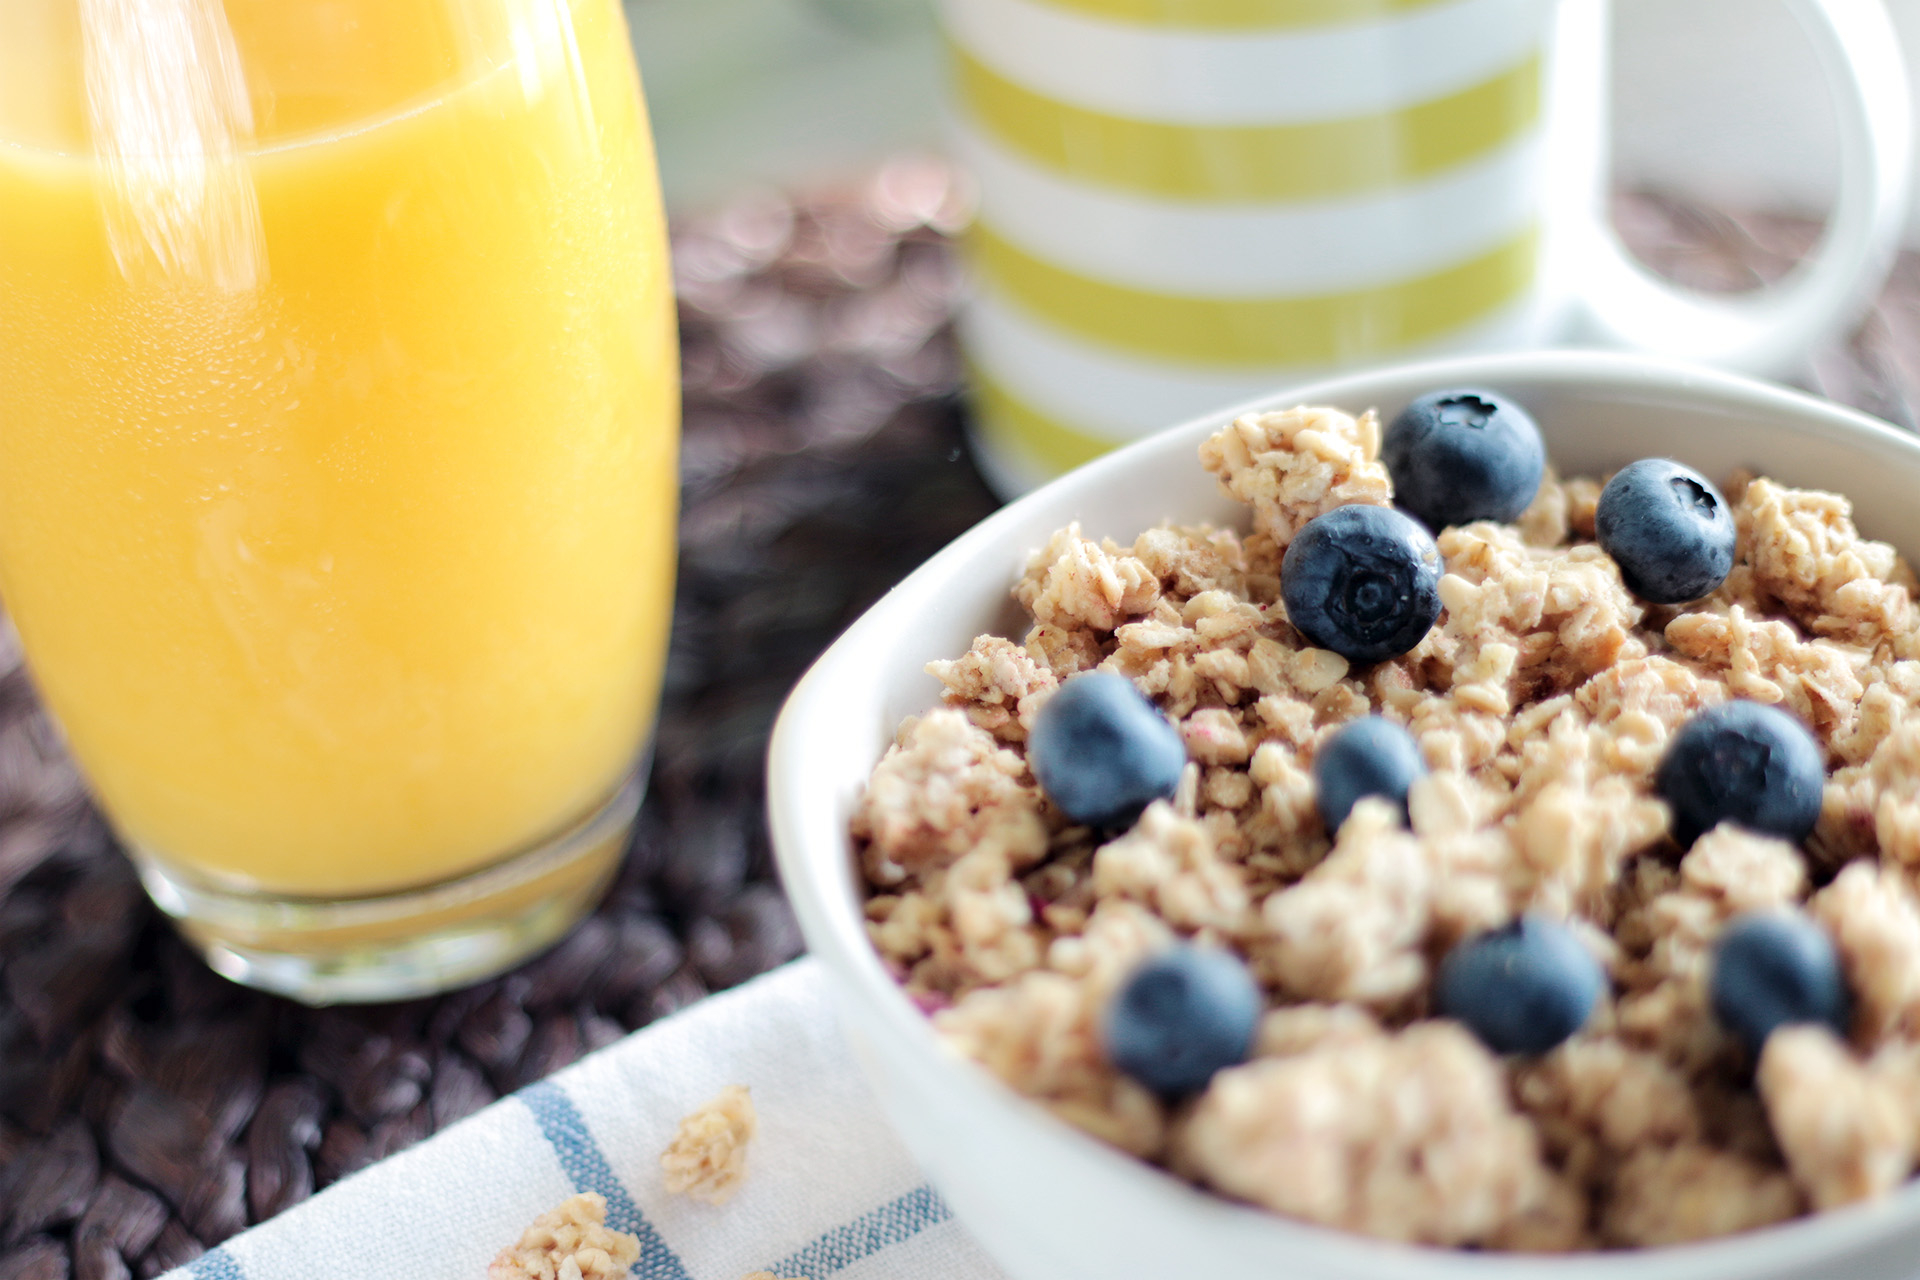 Canva - Bowl of Oatmeal With Berries Beside Glass of Juice.jpg